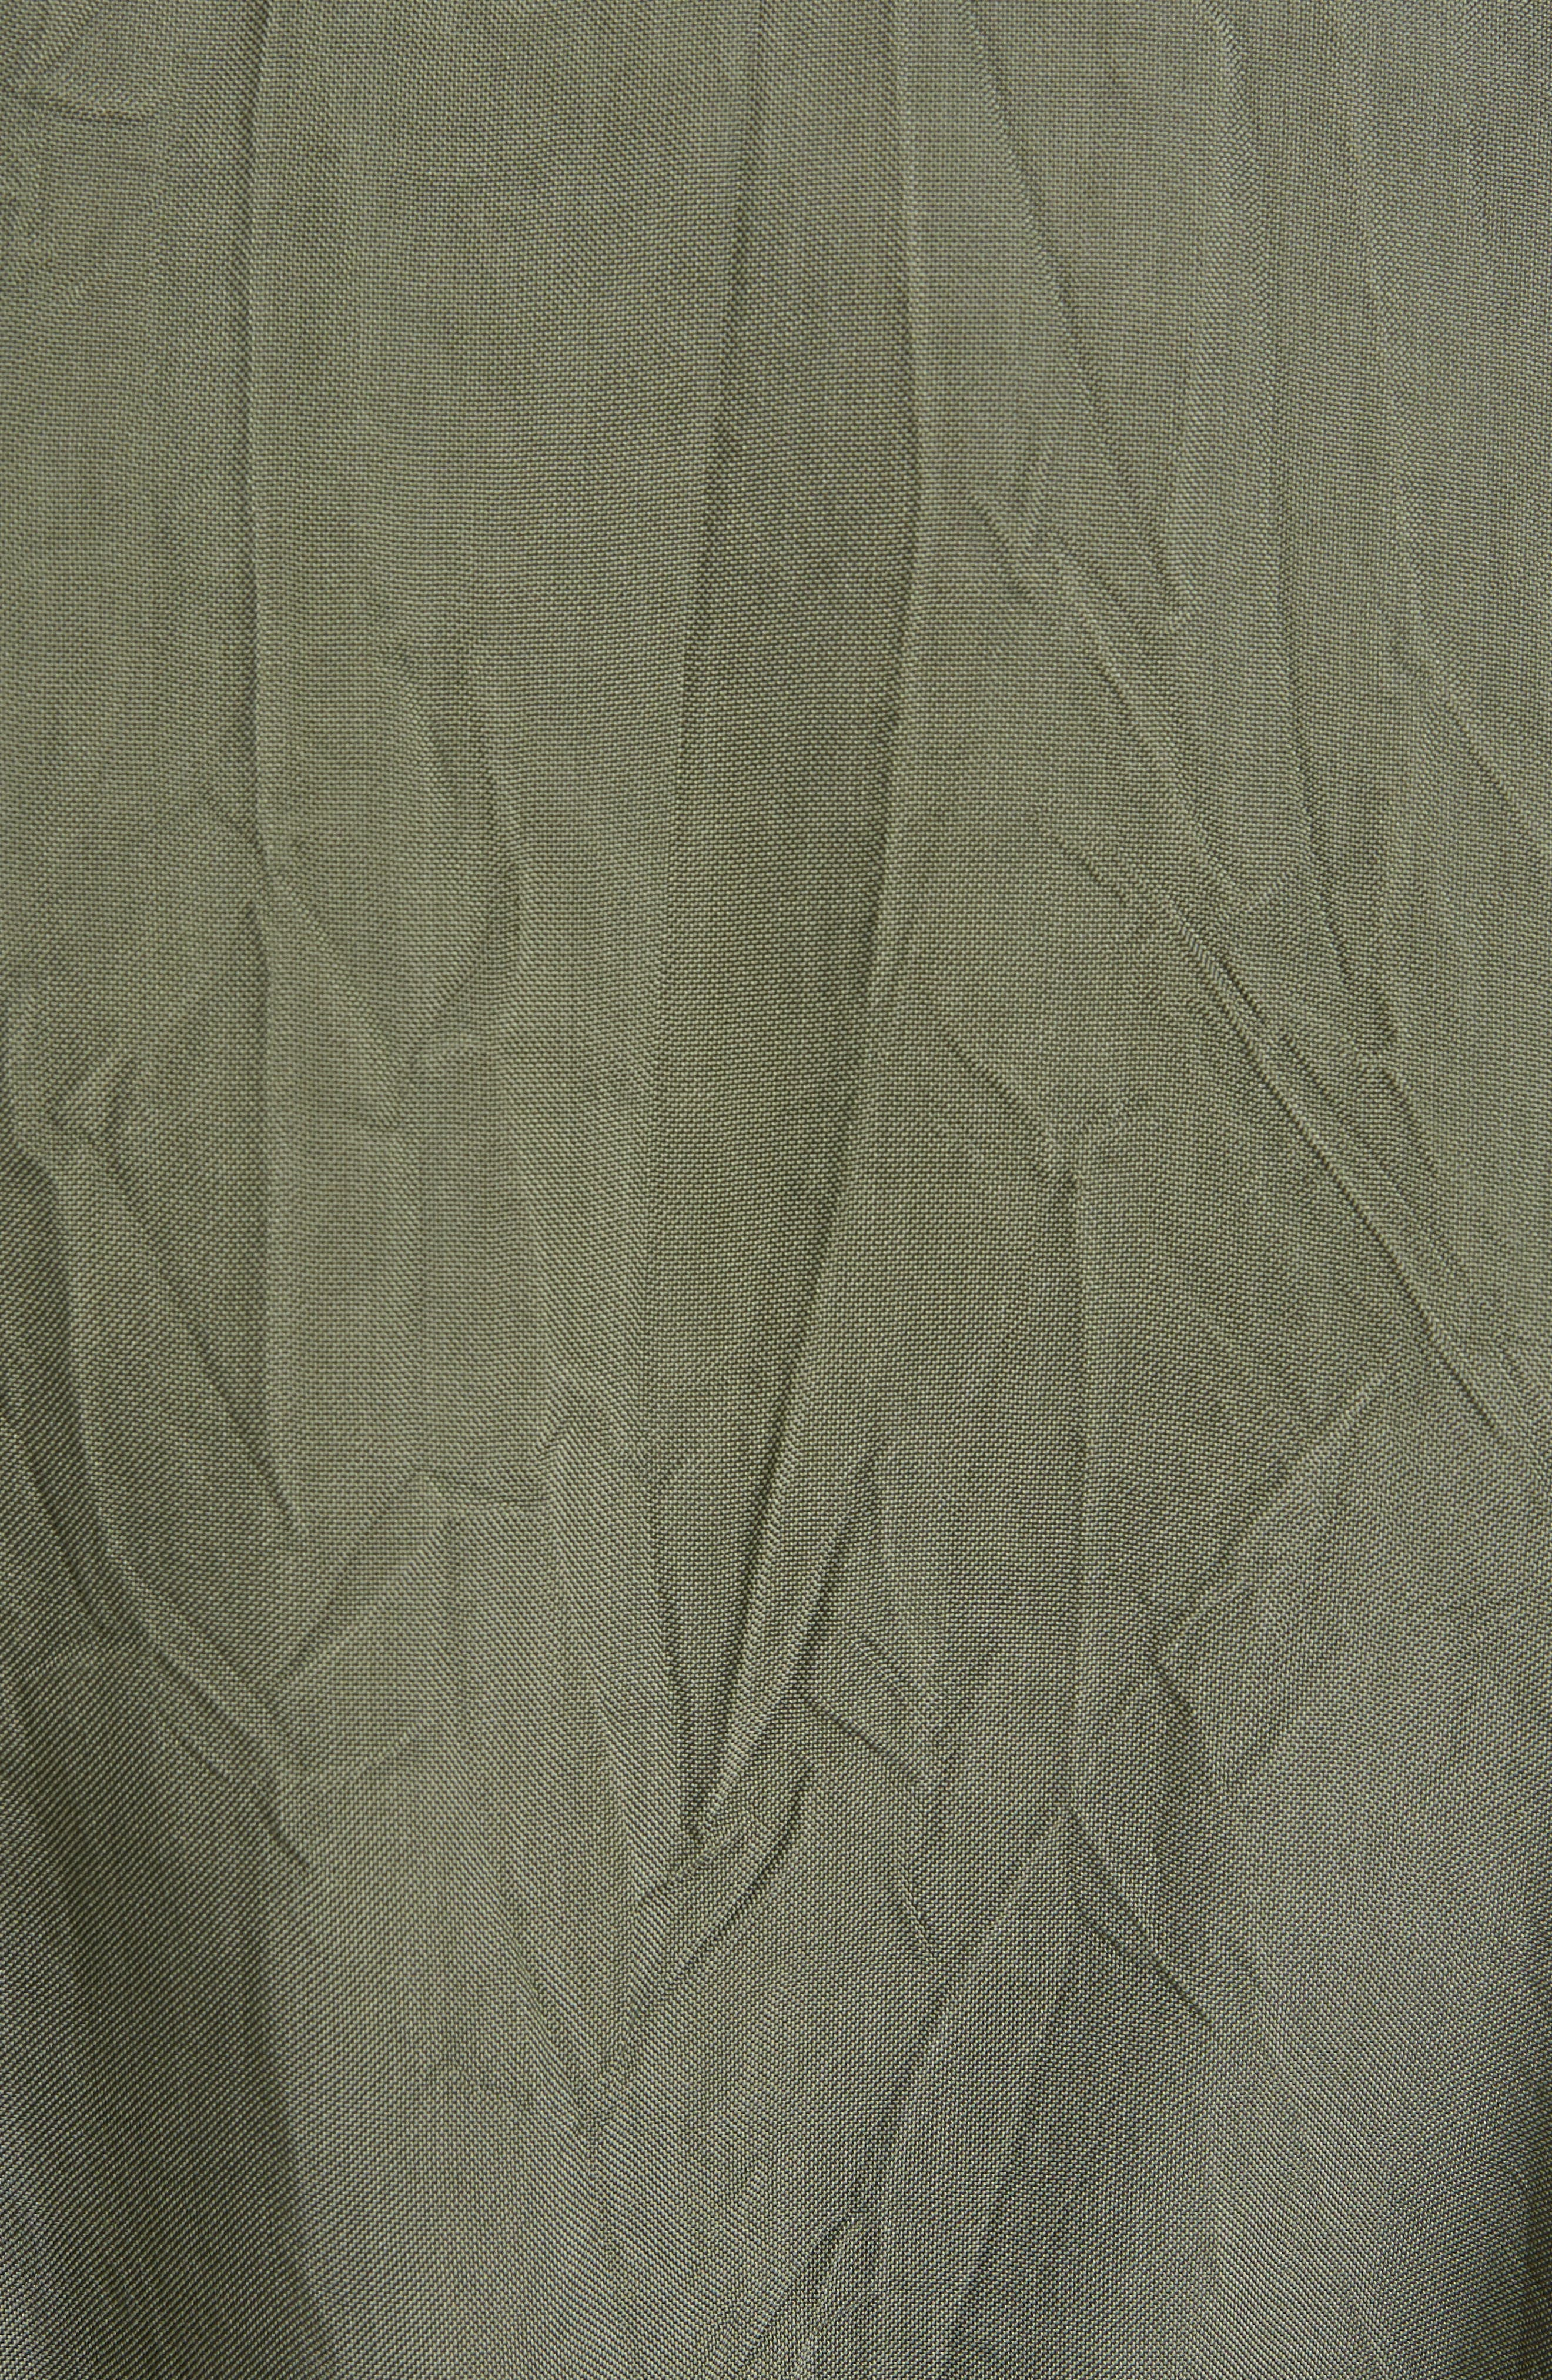 Crinkled Trench Coat,                             Alternate thumbnail 5, color,                             Green